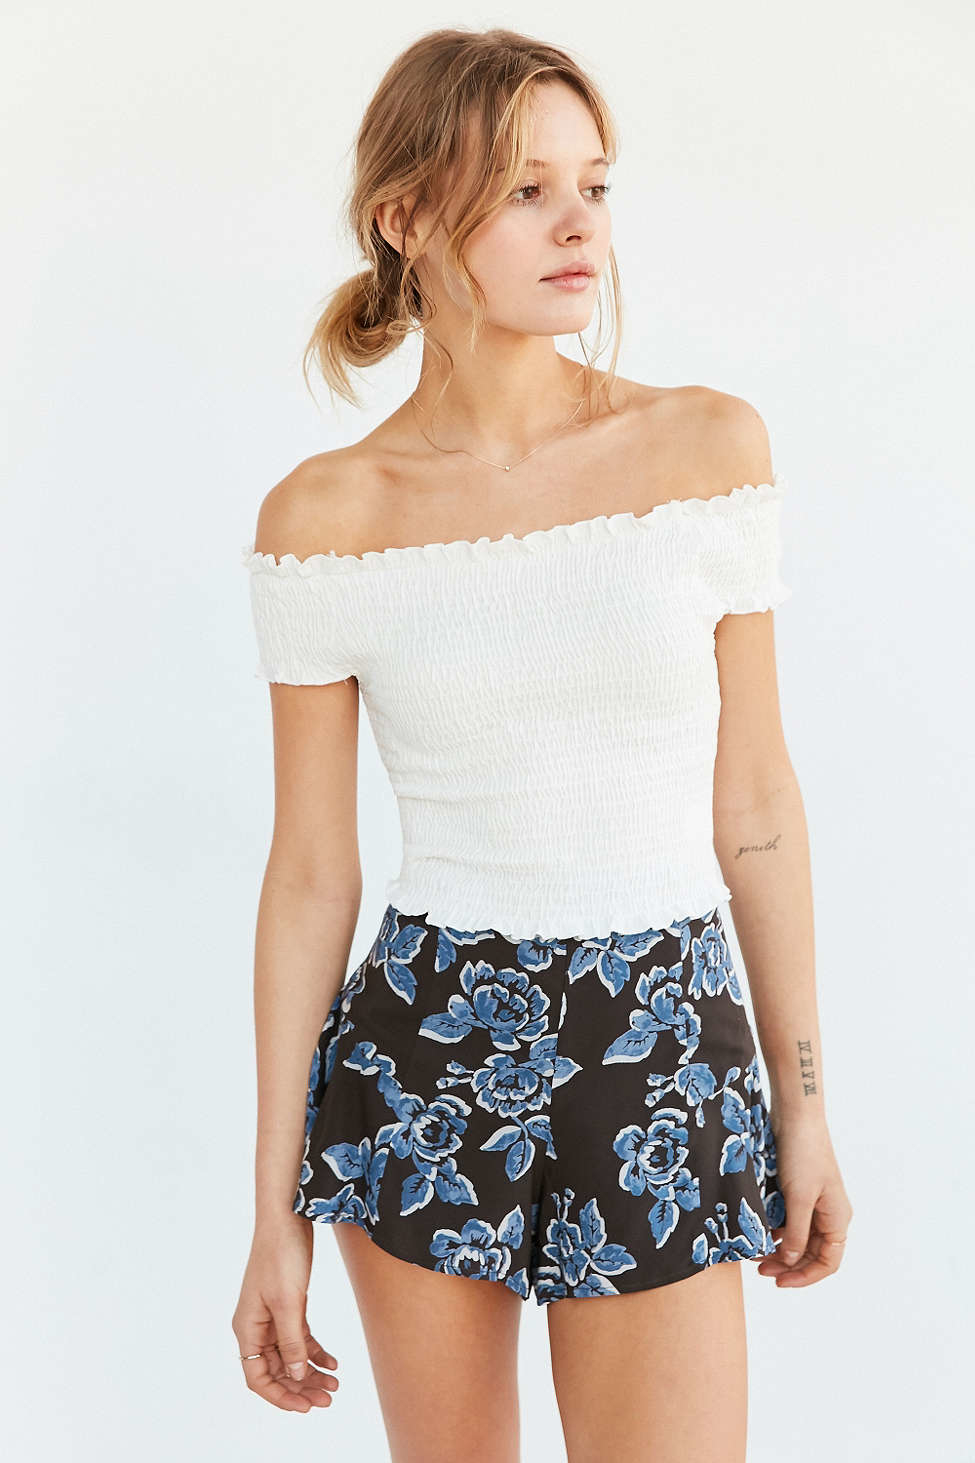 0d9fc43c1a9be5 Lyst - Kimchi Blue Rose Smocked Off-the-shoulder Top in White